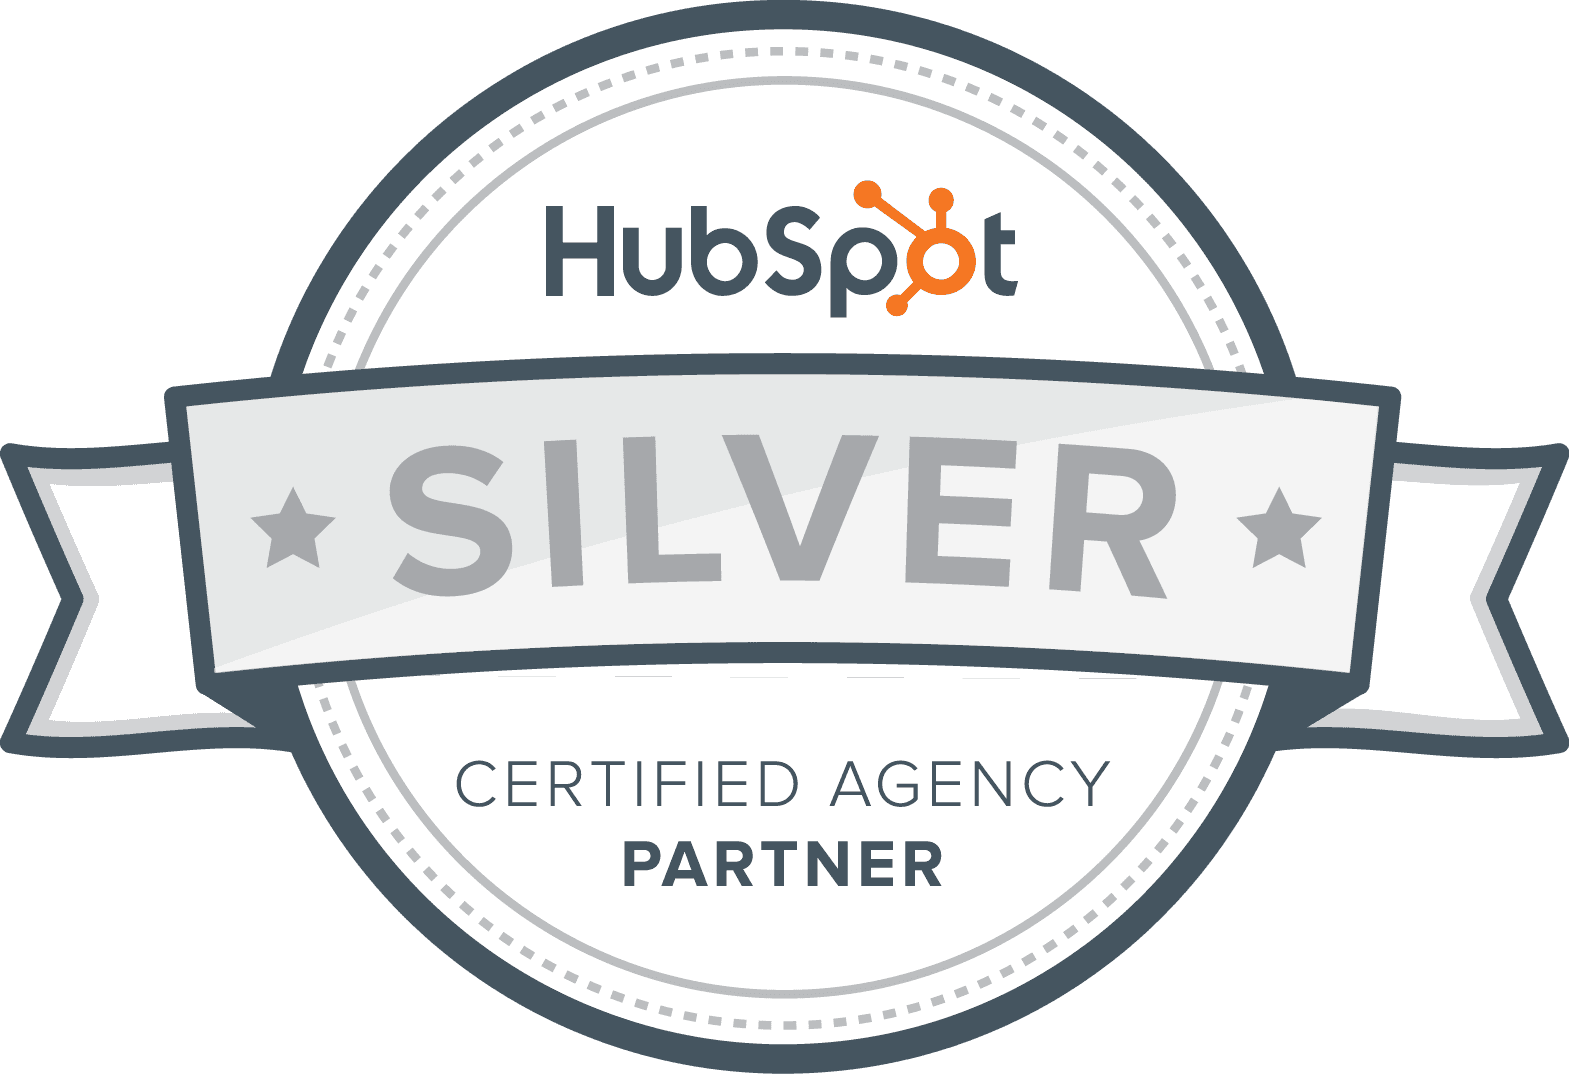 Agencia de Inbound Marketing, Silver Partner de HubSpot.